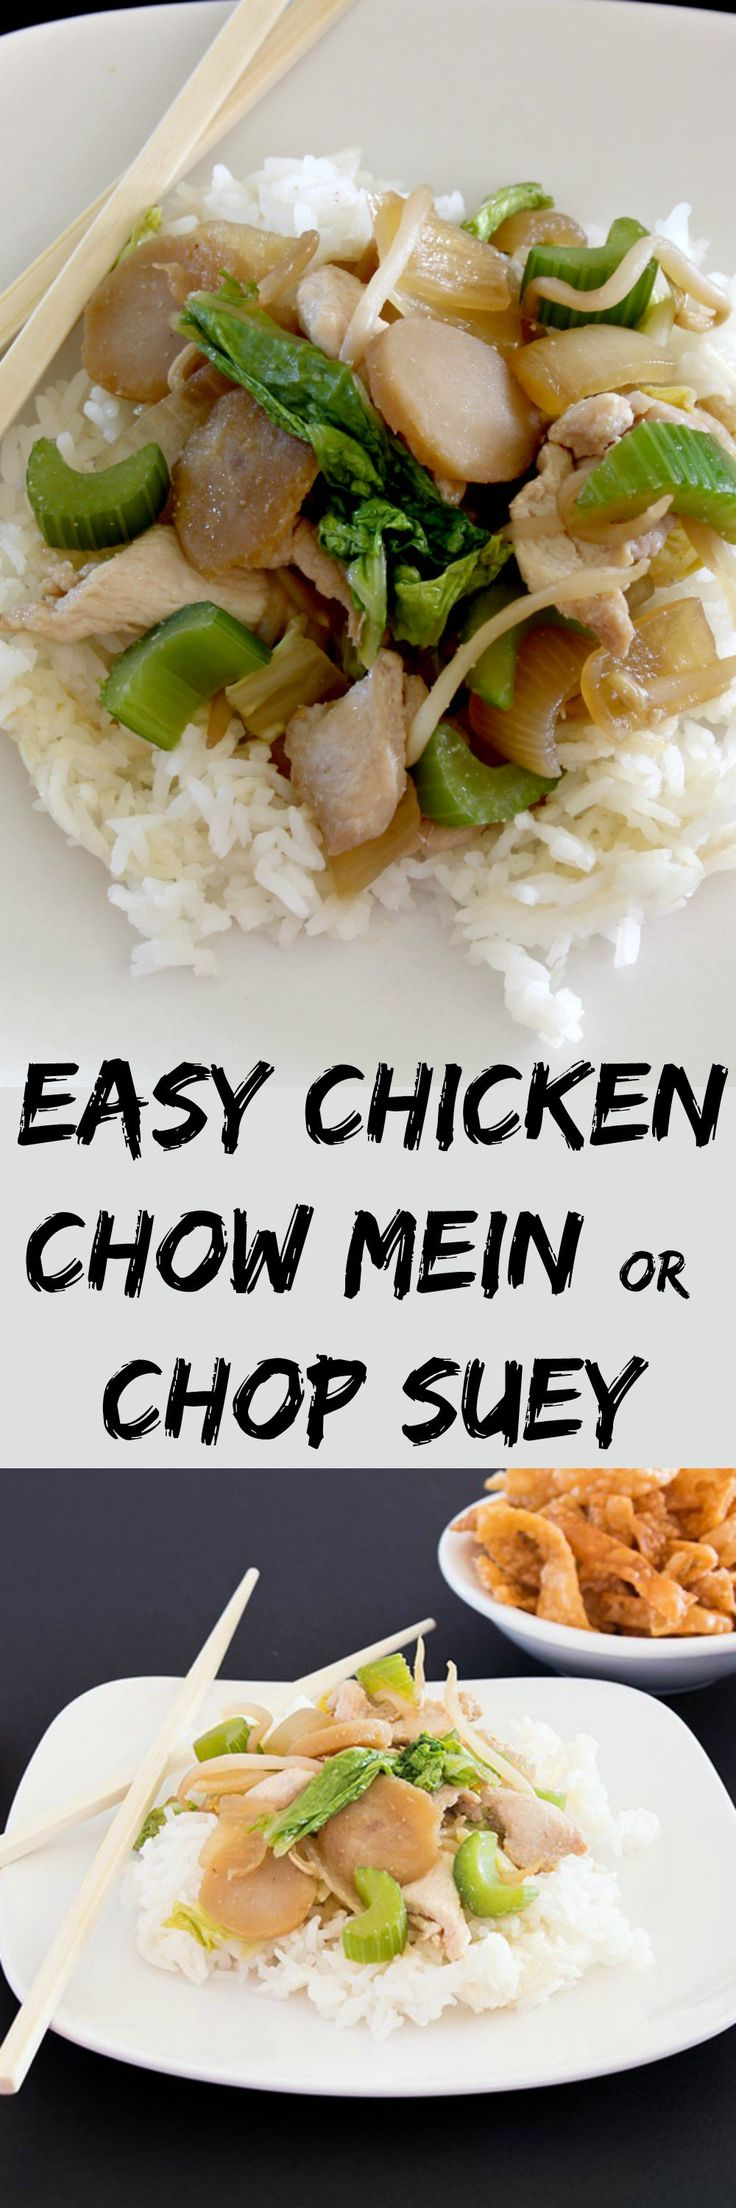 Easy recipe for chicken chow mein or chop suey can be made on a weeknight.